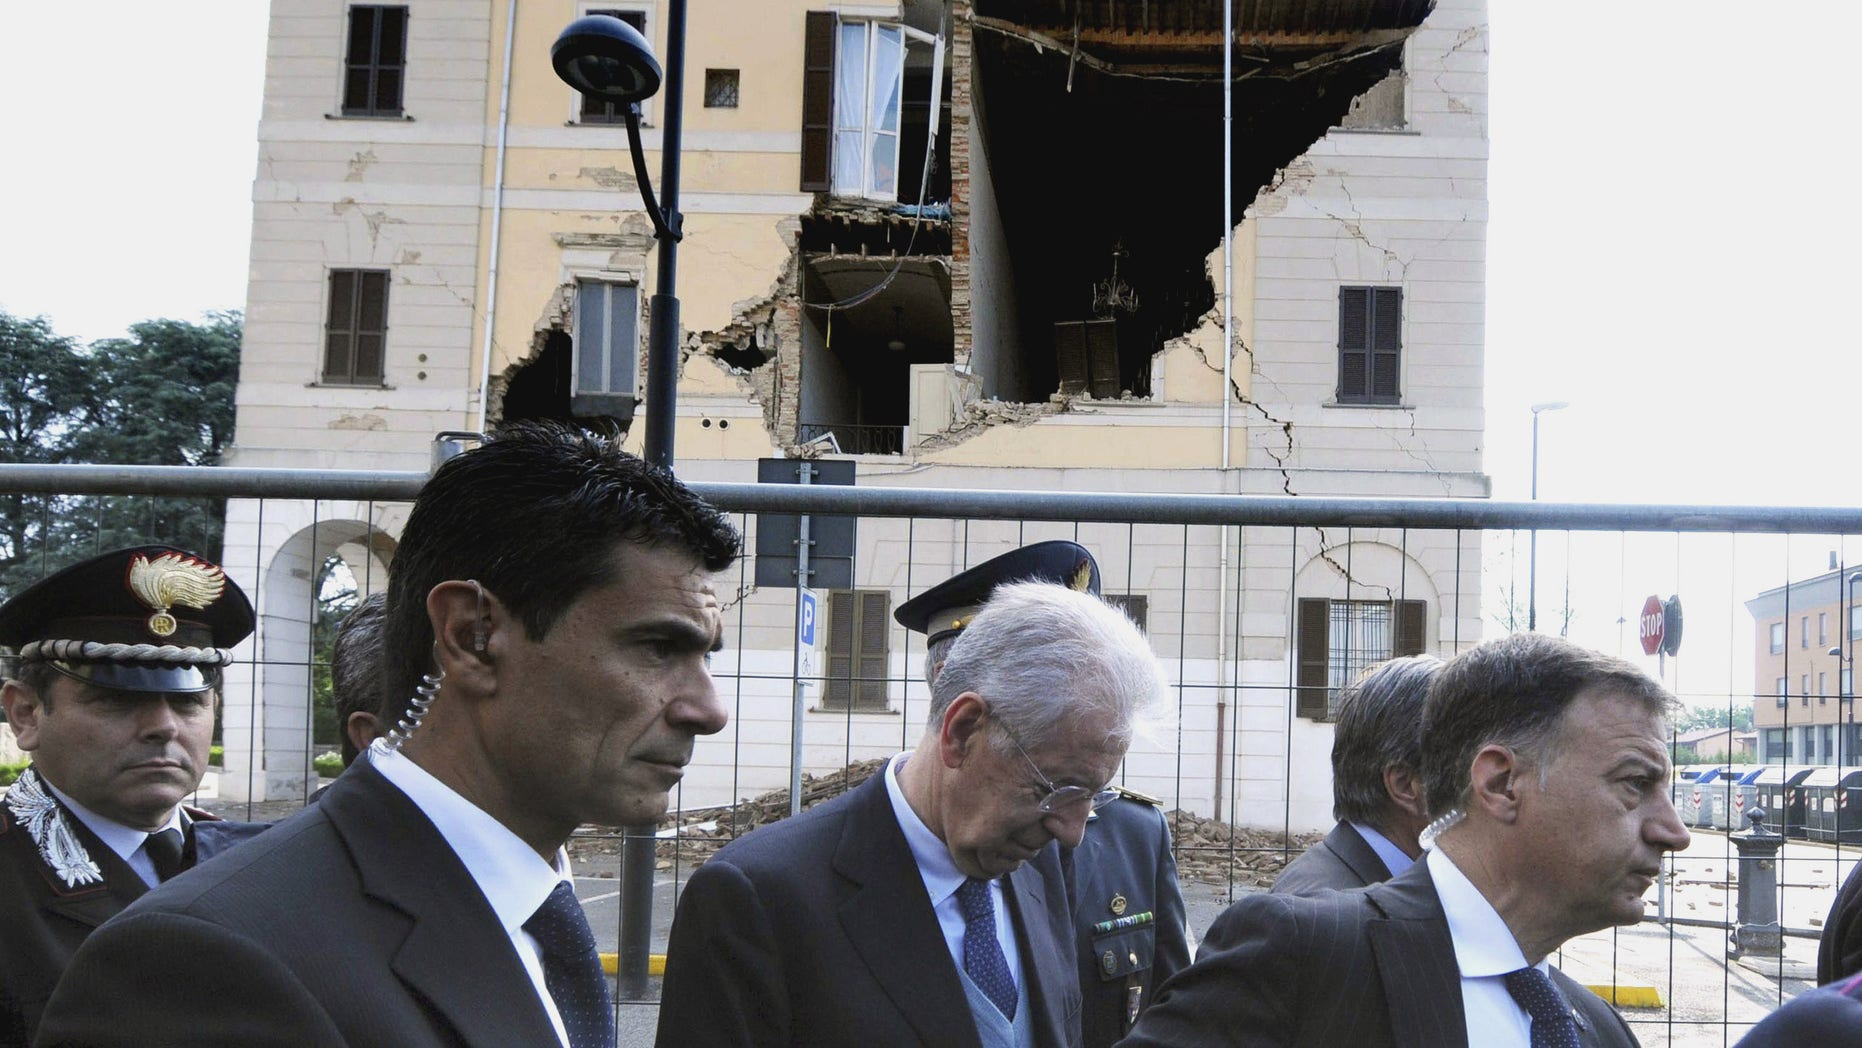 May 22, 2012: Italian Premier Mario Monti, center, looks down as he walks past the damaged town hall of Sant'Agostino, during a visit to the area hit by a quake.